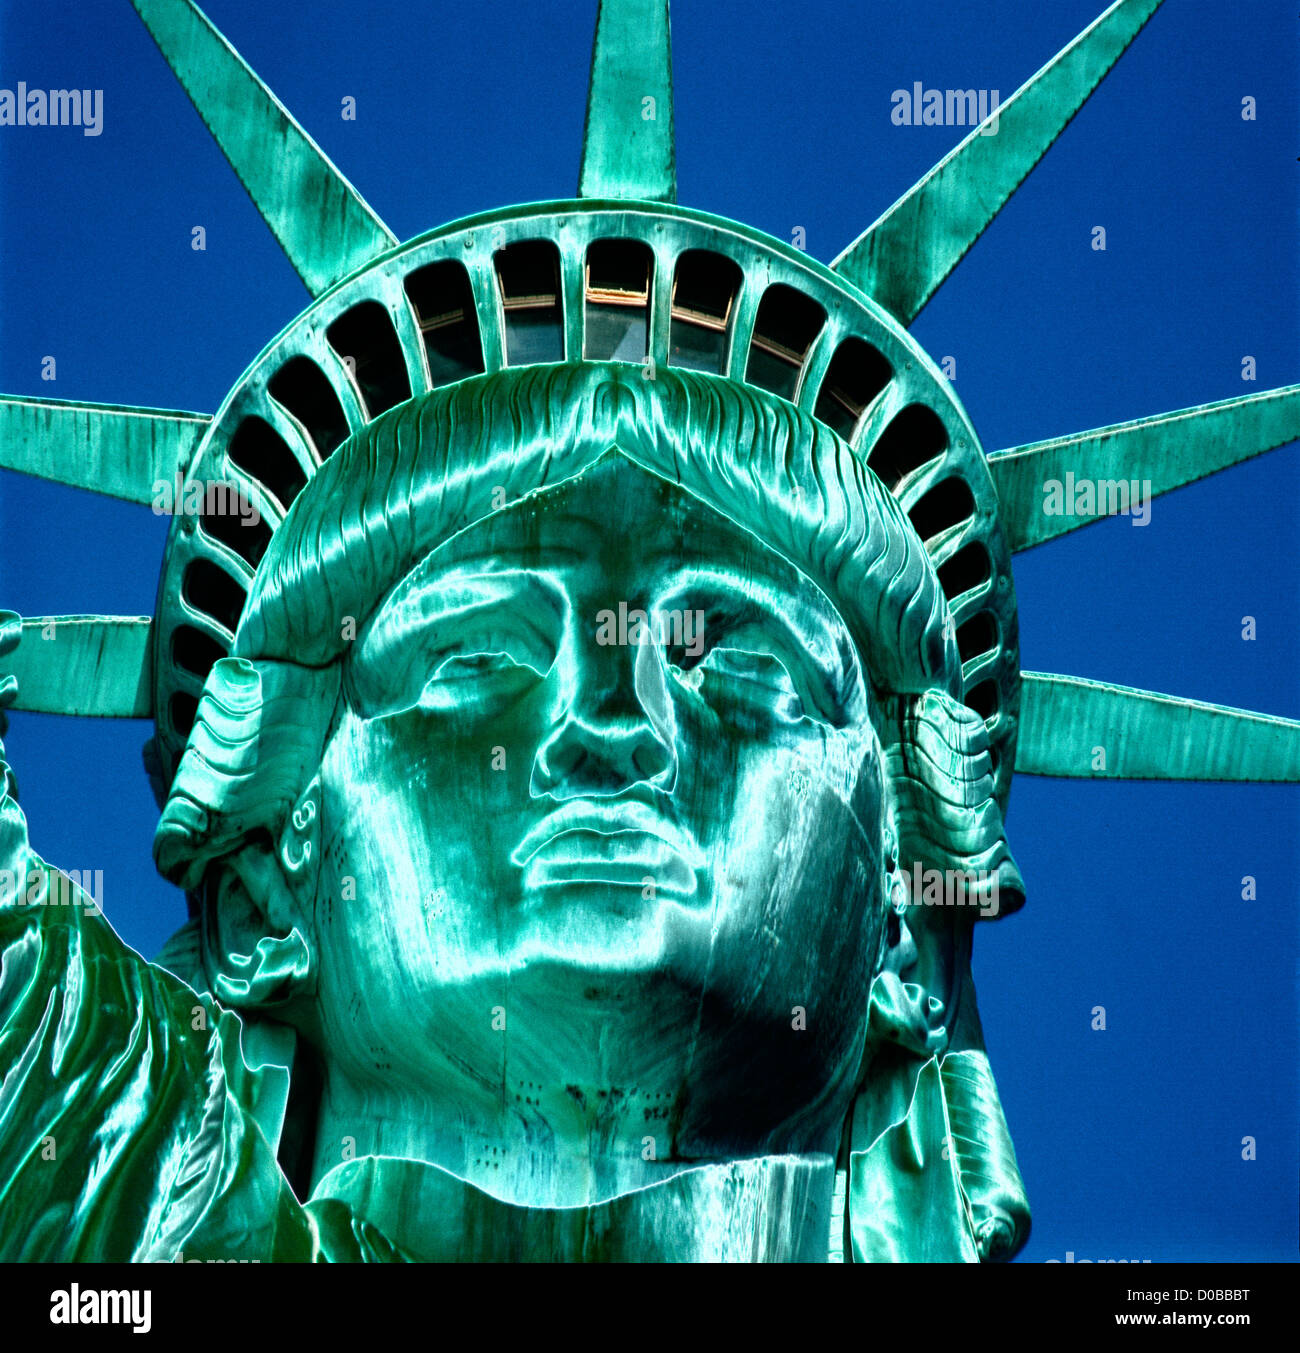 Interprétation abstraite de Statue de la liberté USA concept Photo Stock